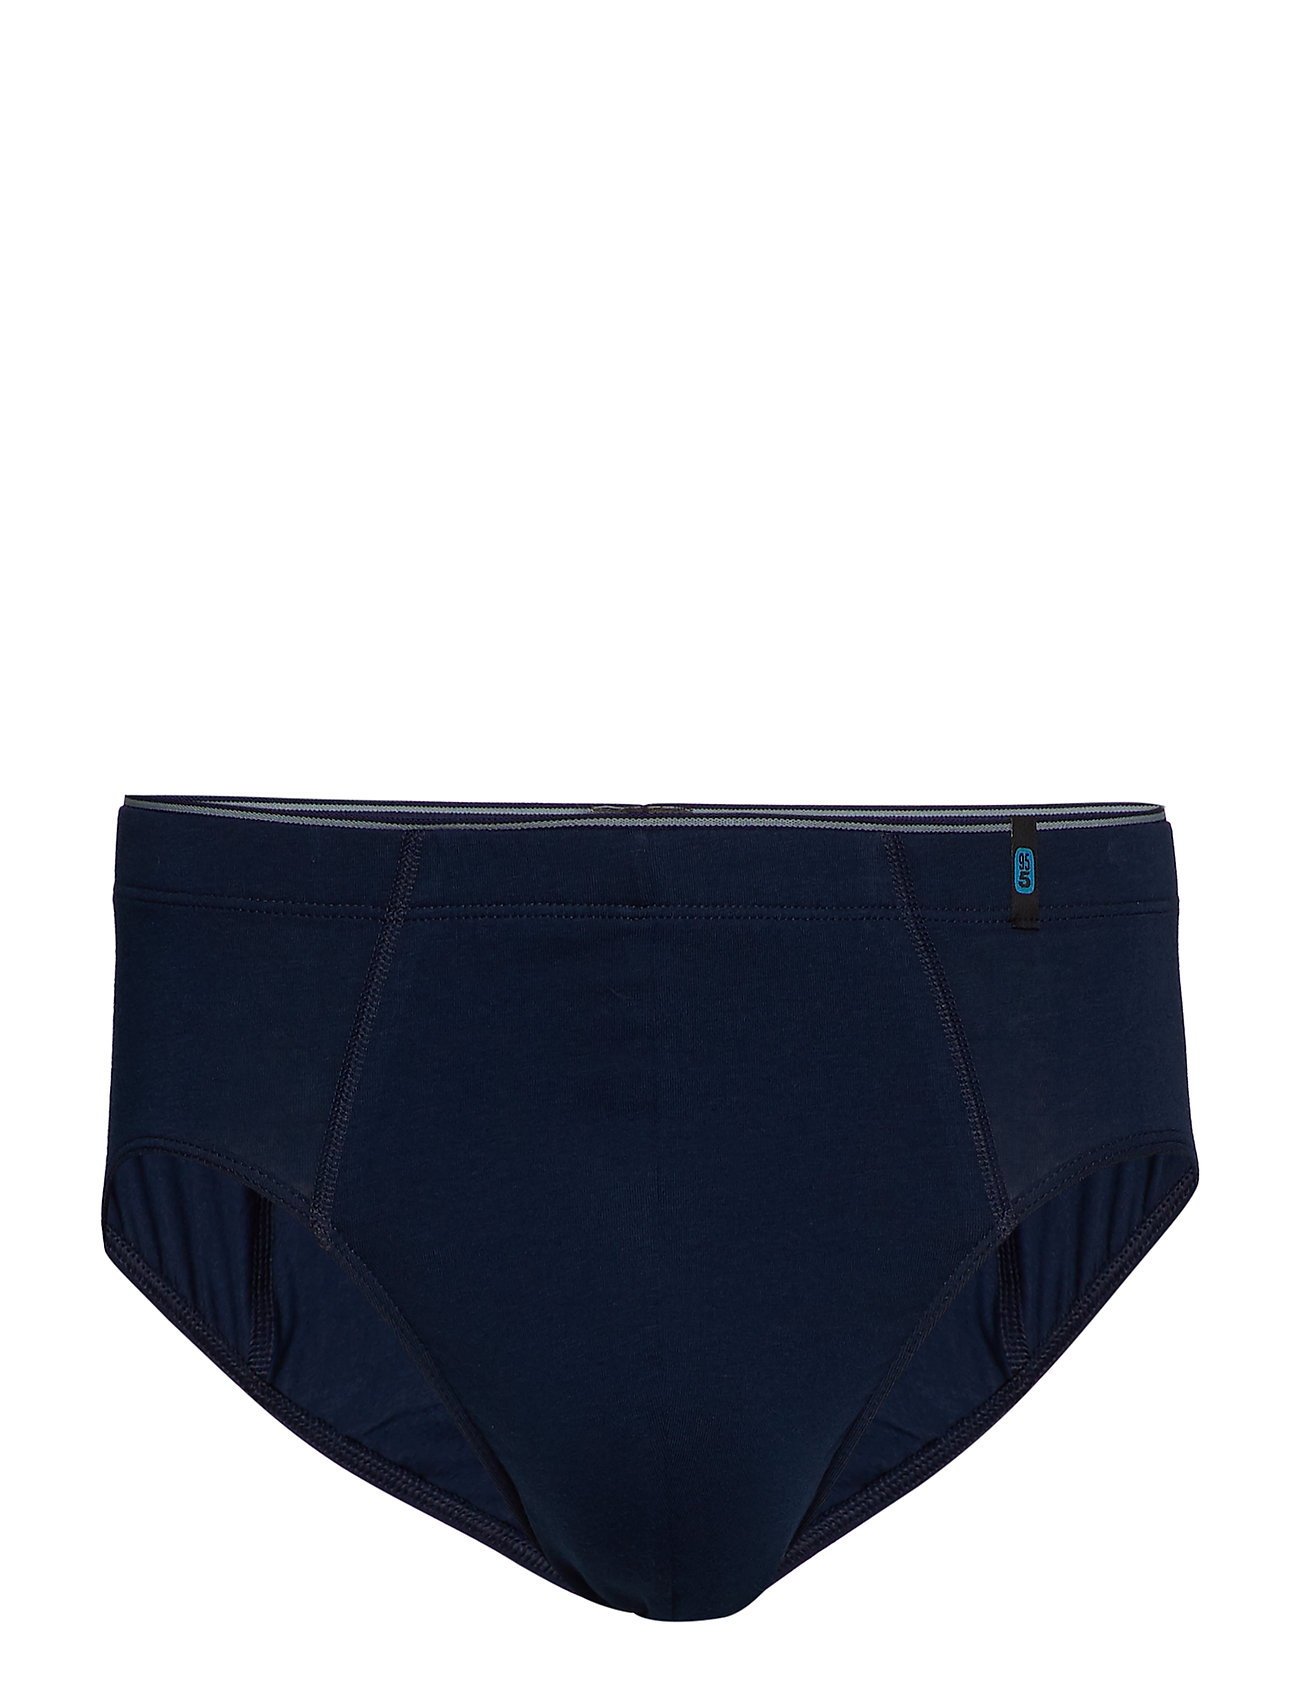 Schiesser Low Rise Brief - ADMIRAL